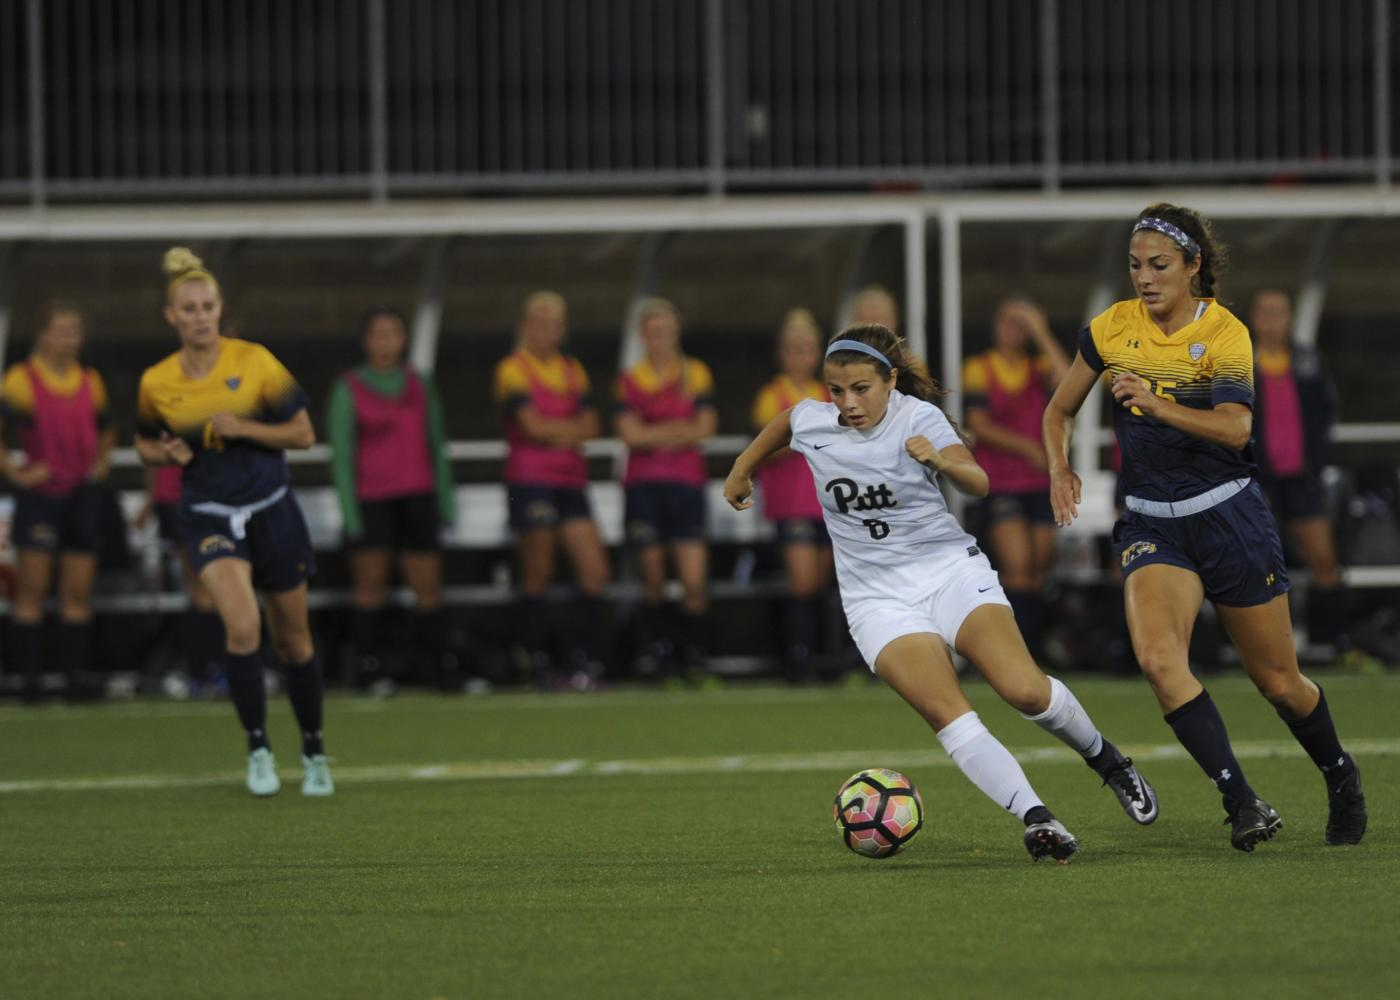 The Pitt women's soccer team fell to the Kent State Golden Flashes 1-0 in Thursday night's game. (Photo by John Hamilton | Managing Editor)